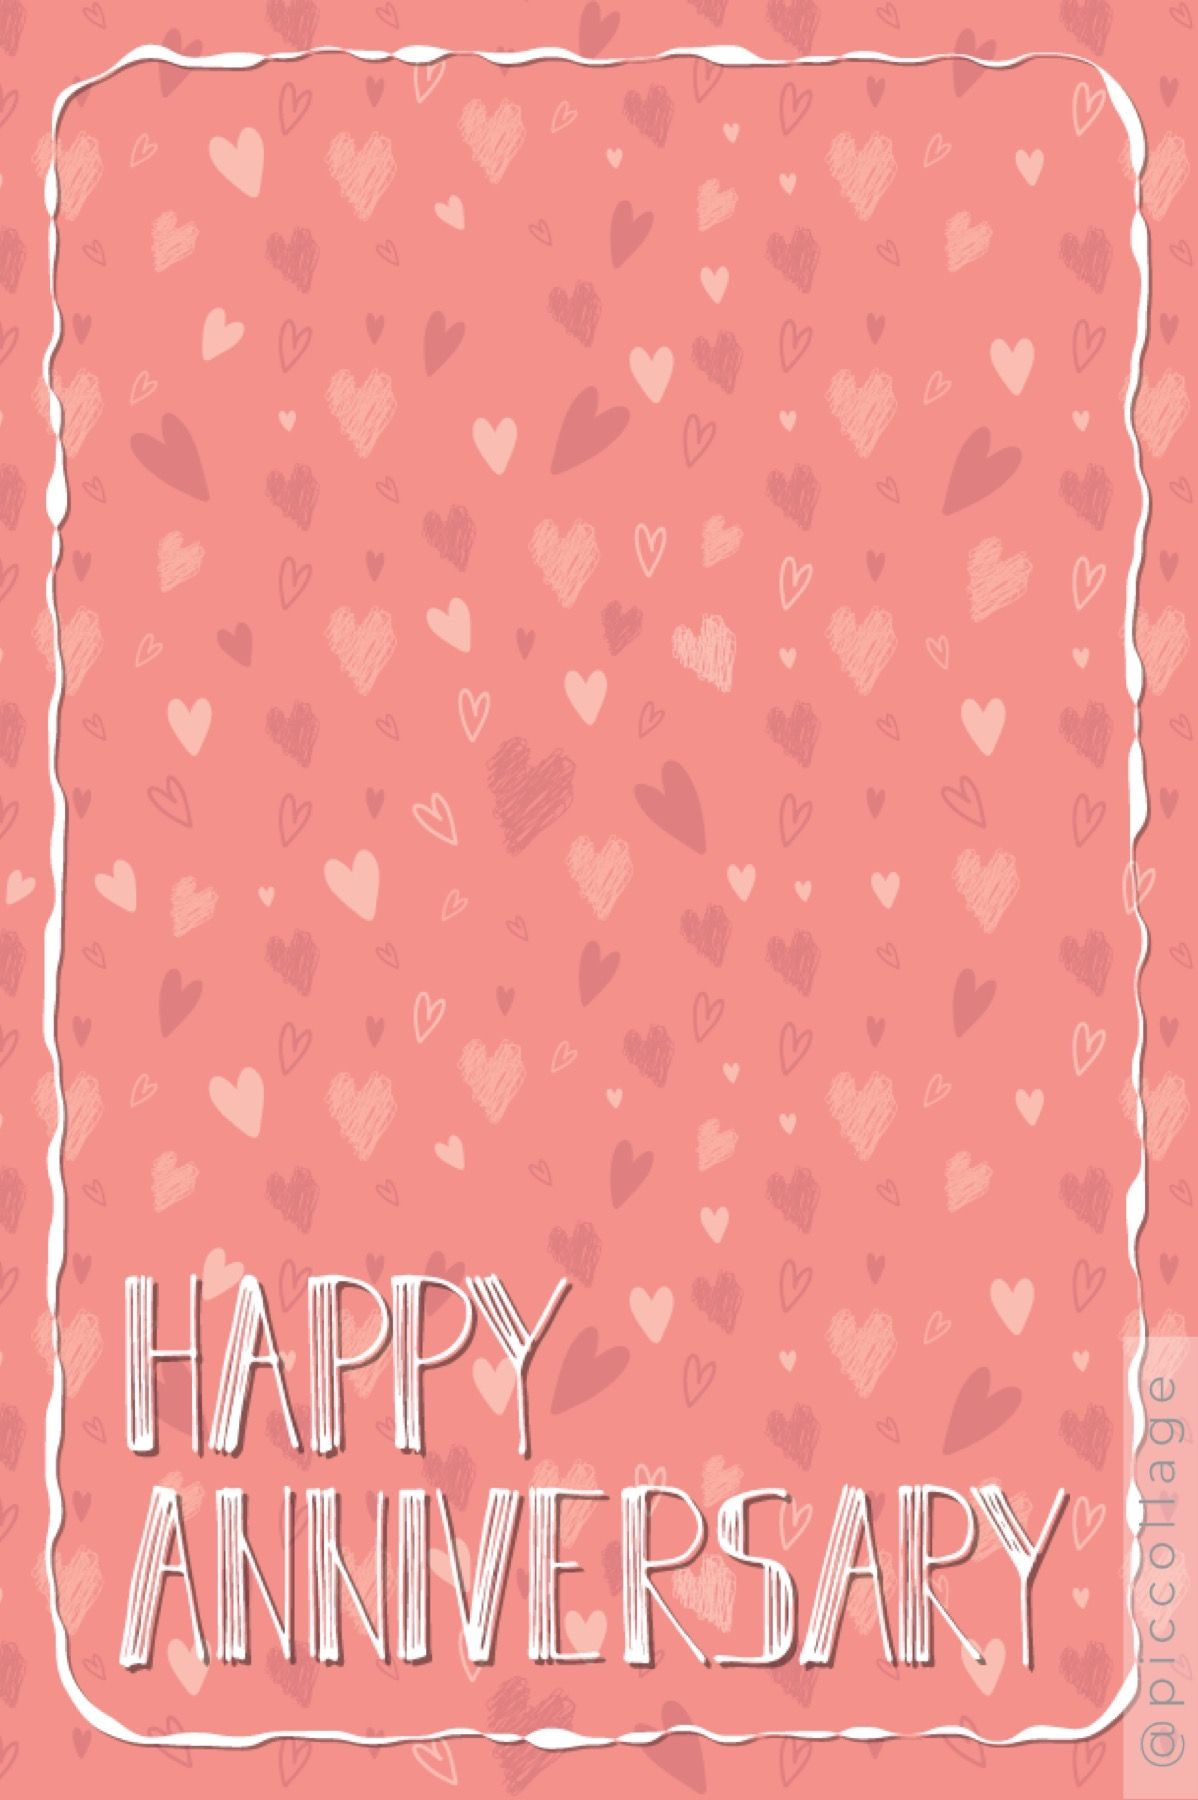 Happy Anniversary Digital Card Template In 2021 Happy Birthday Posters Happy Anniversary Happy Birthday Template